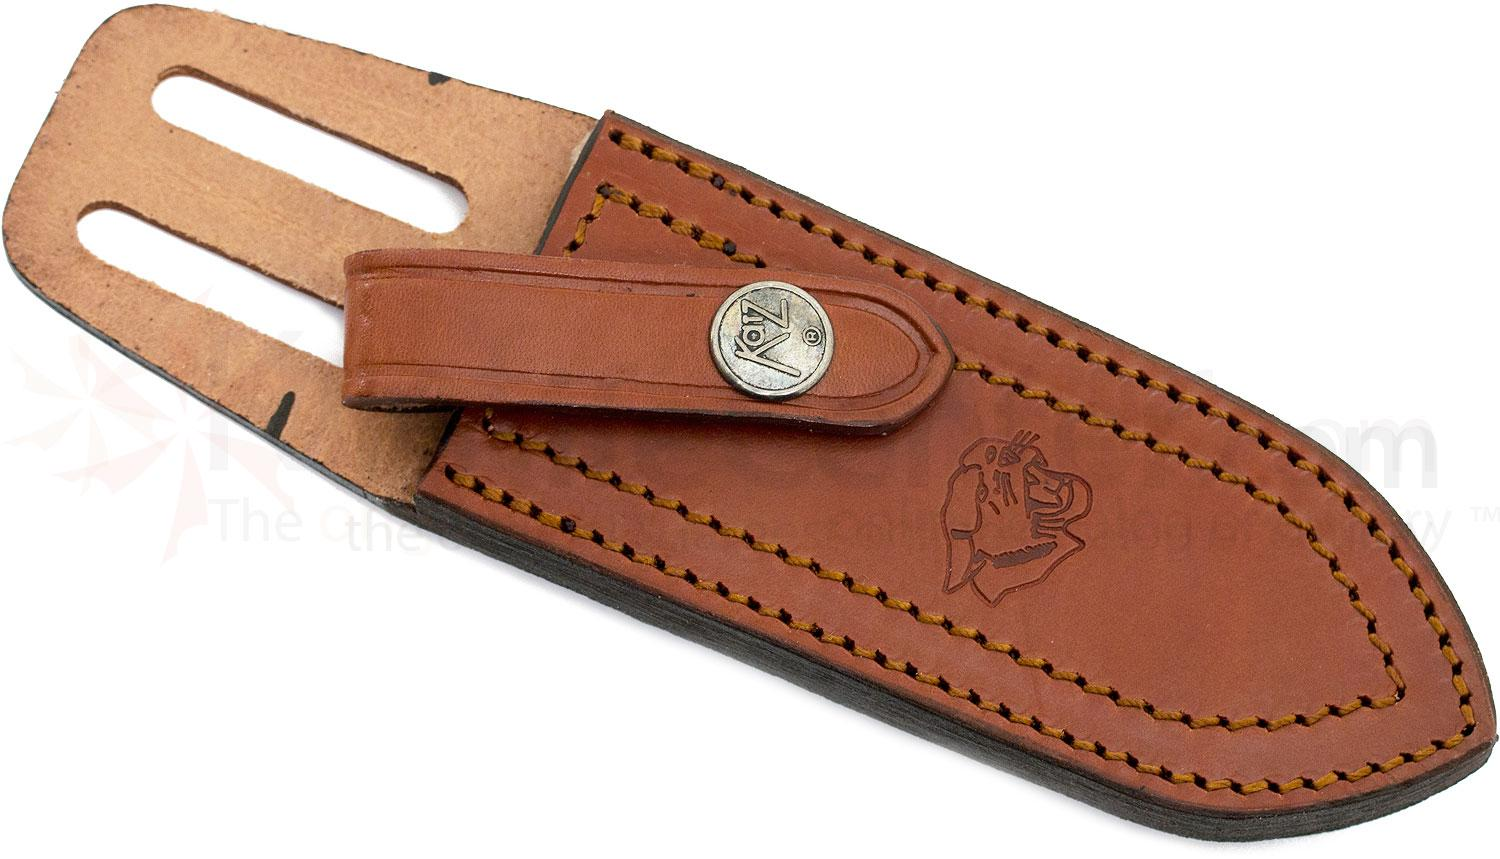 Katz Leather Friction Sheath for Avenger Dive Knife